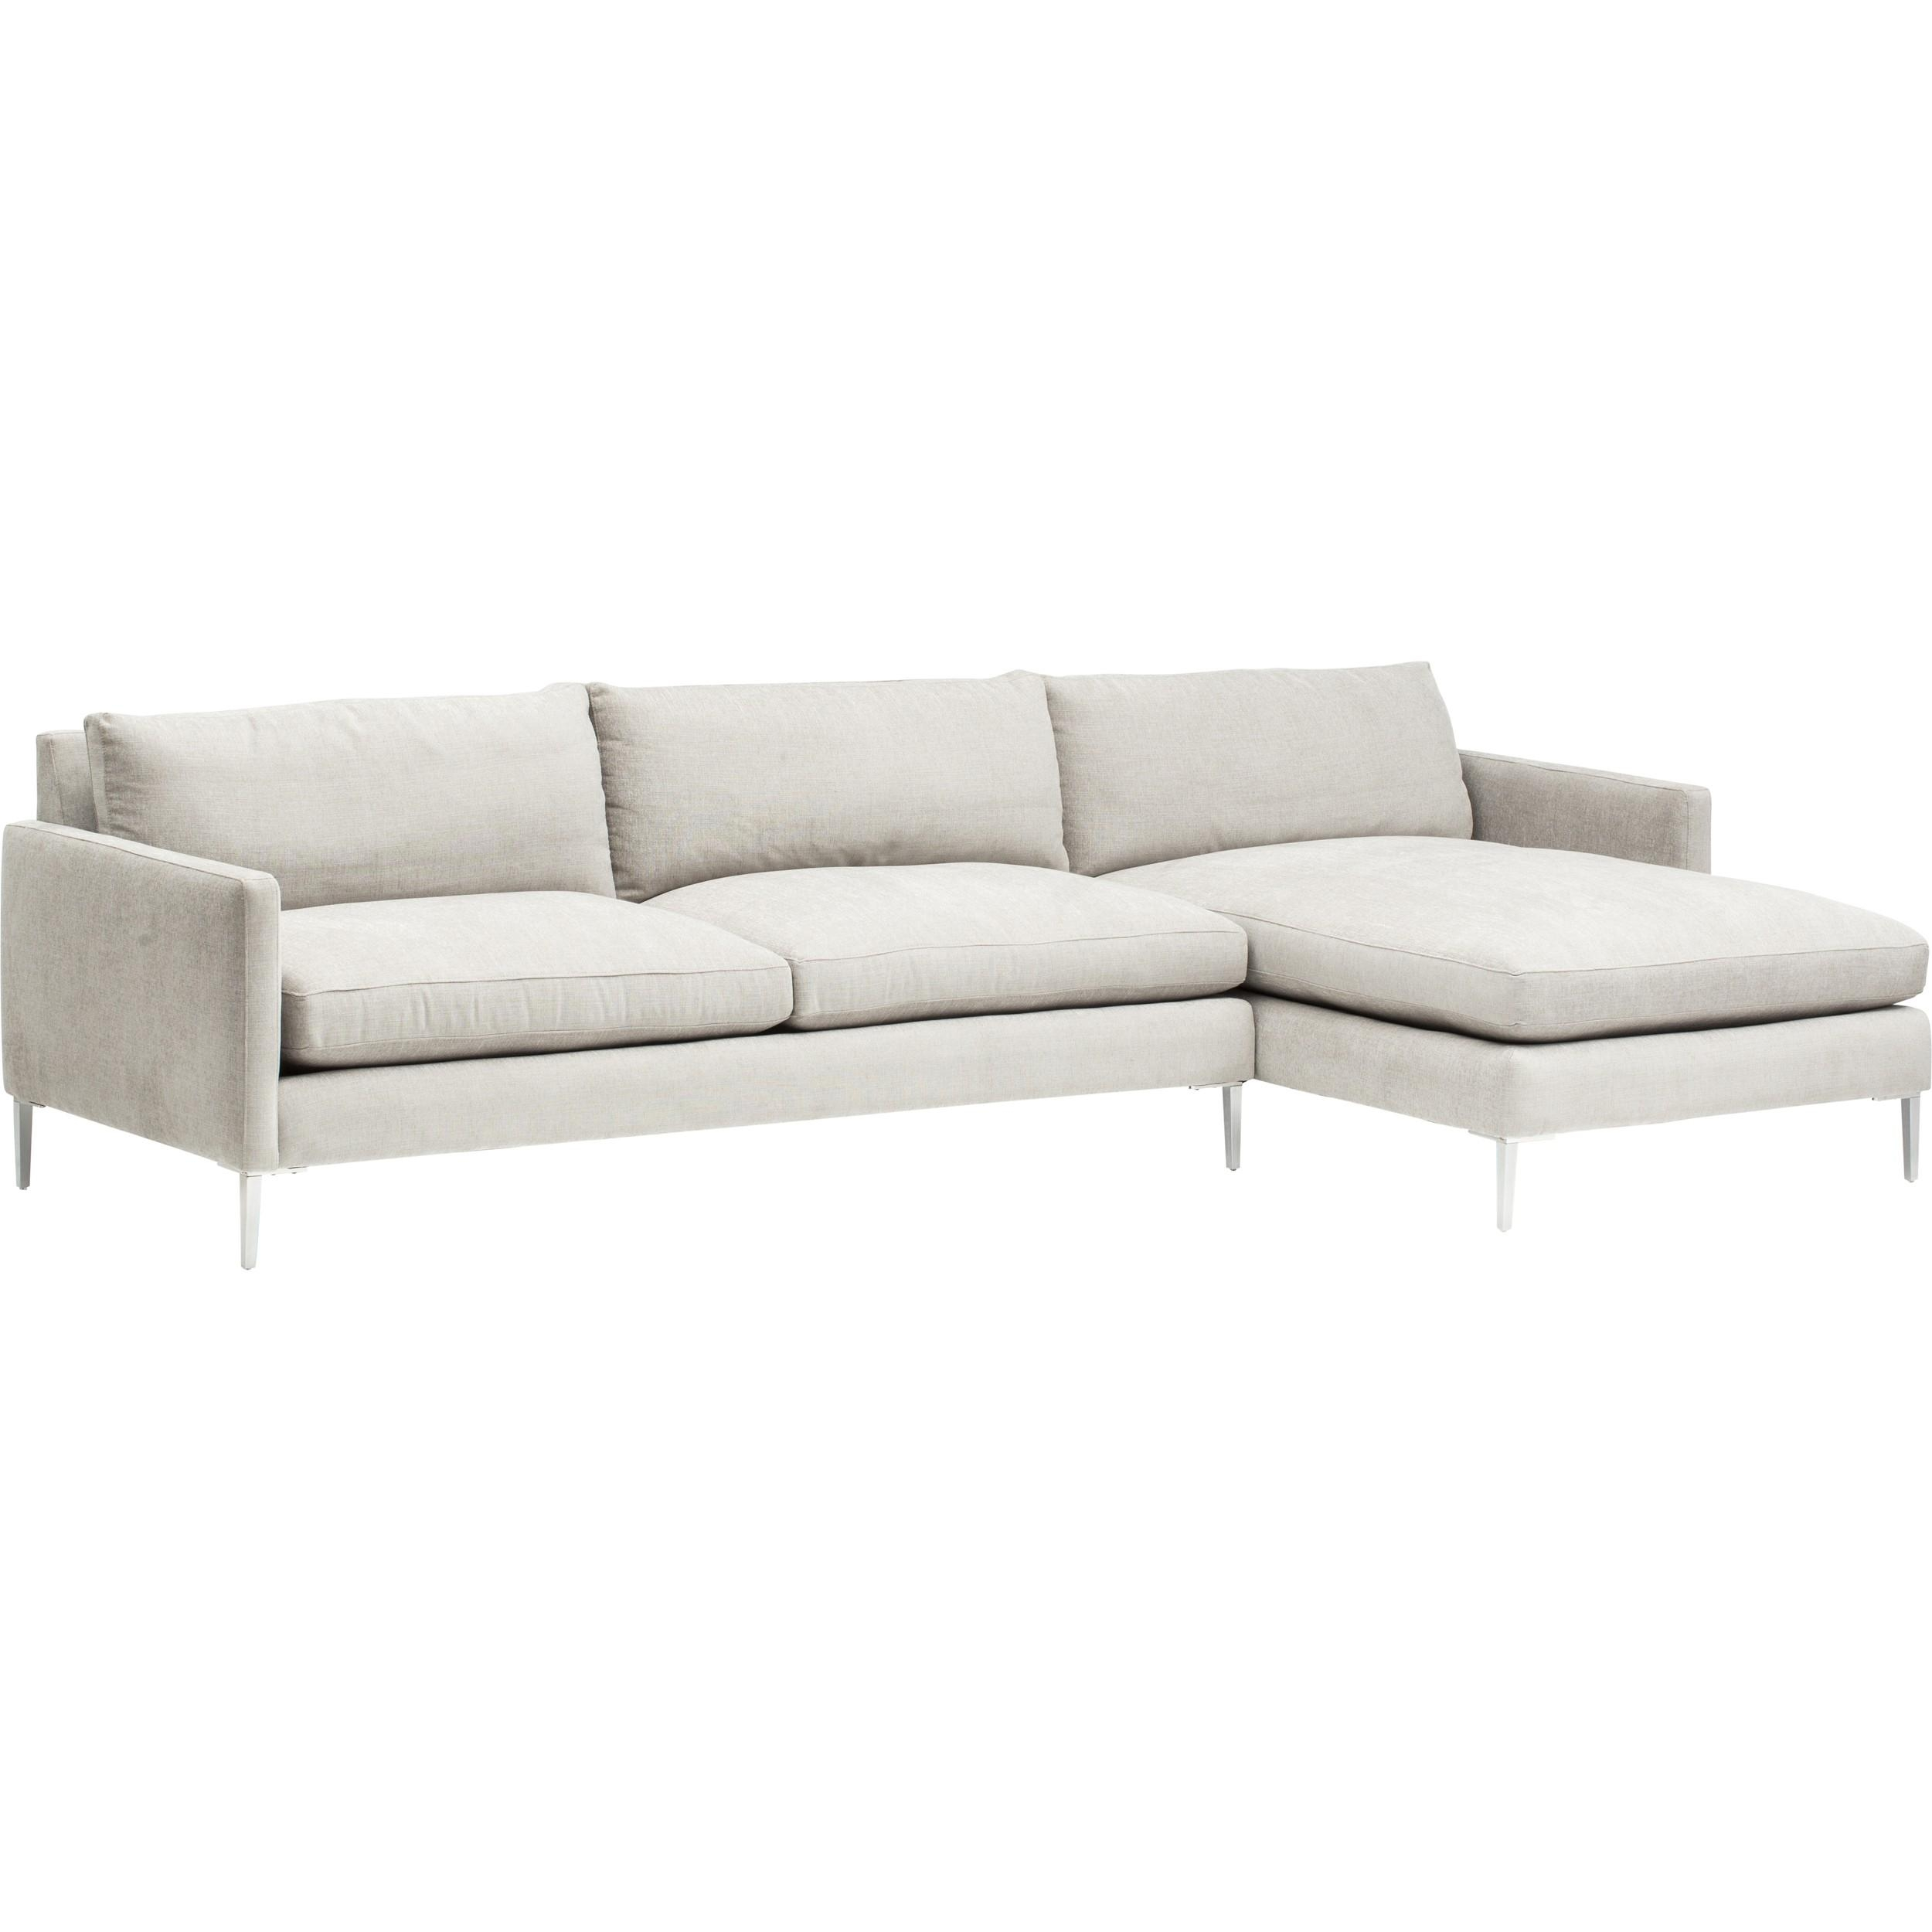 Marshall Sectional, Danville Cloud – Fabric – Sofas – Furniture With Regard To Cloud Sectional Sofas (Image 14 of 20)